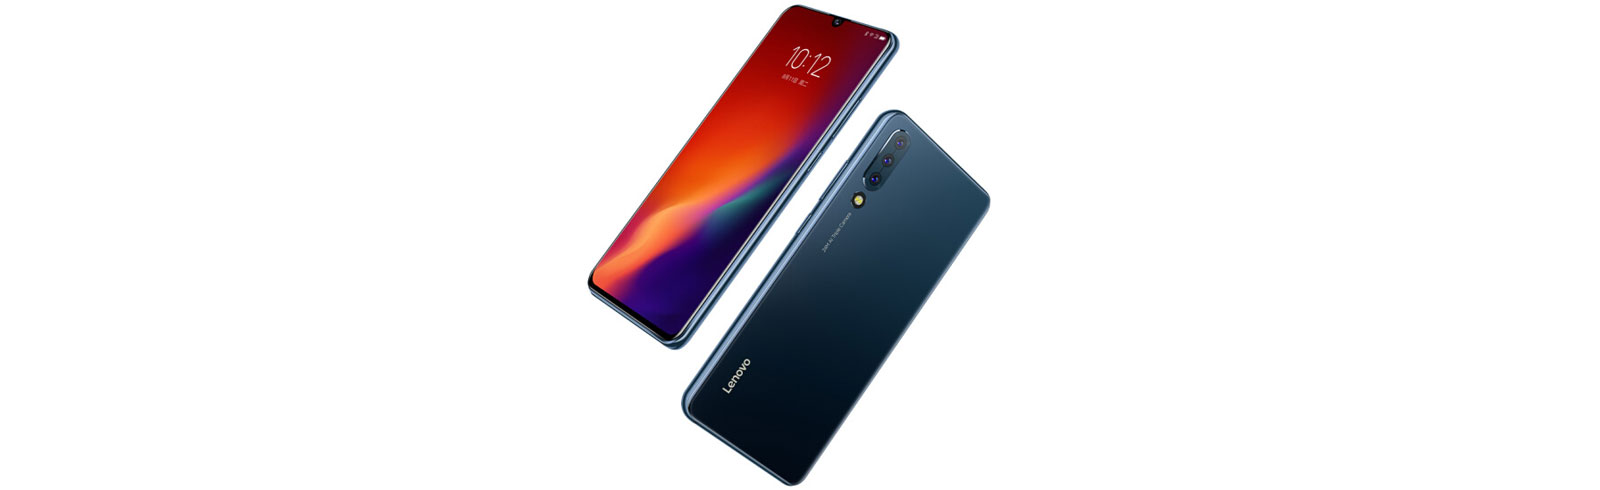 Lenovo Z6 goes on sale in China, costs CNY 1899 (USD 276)